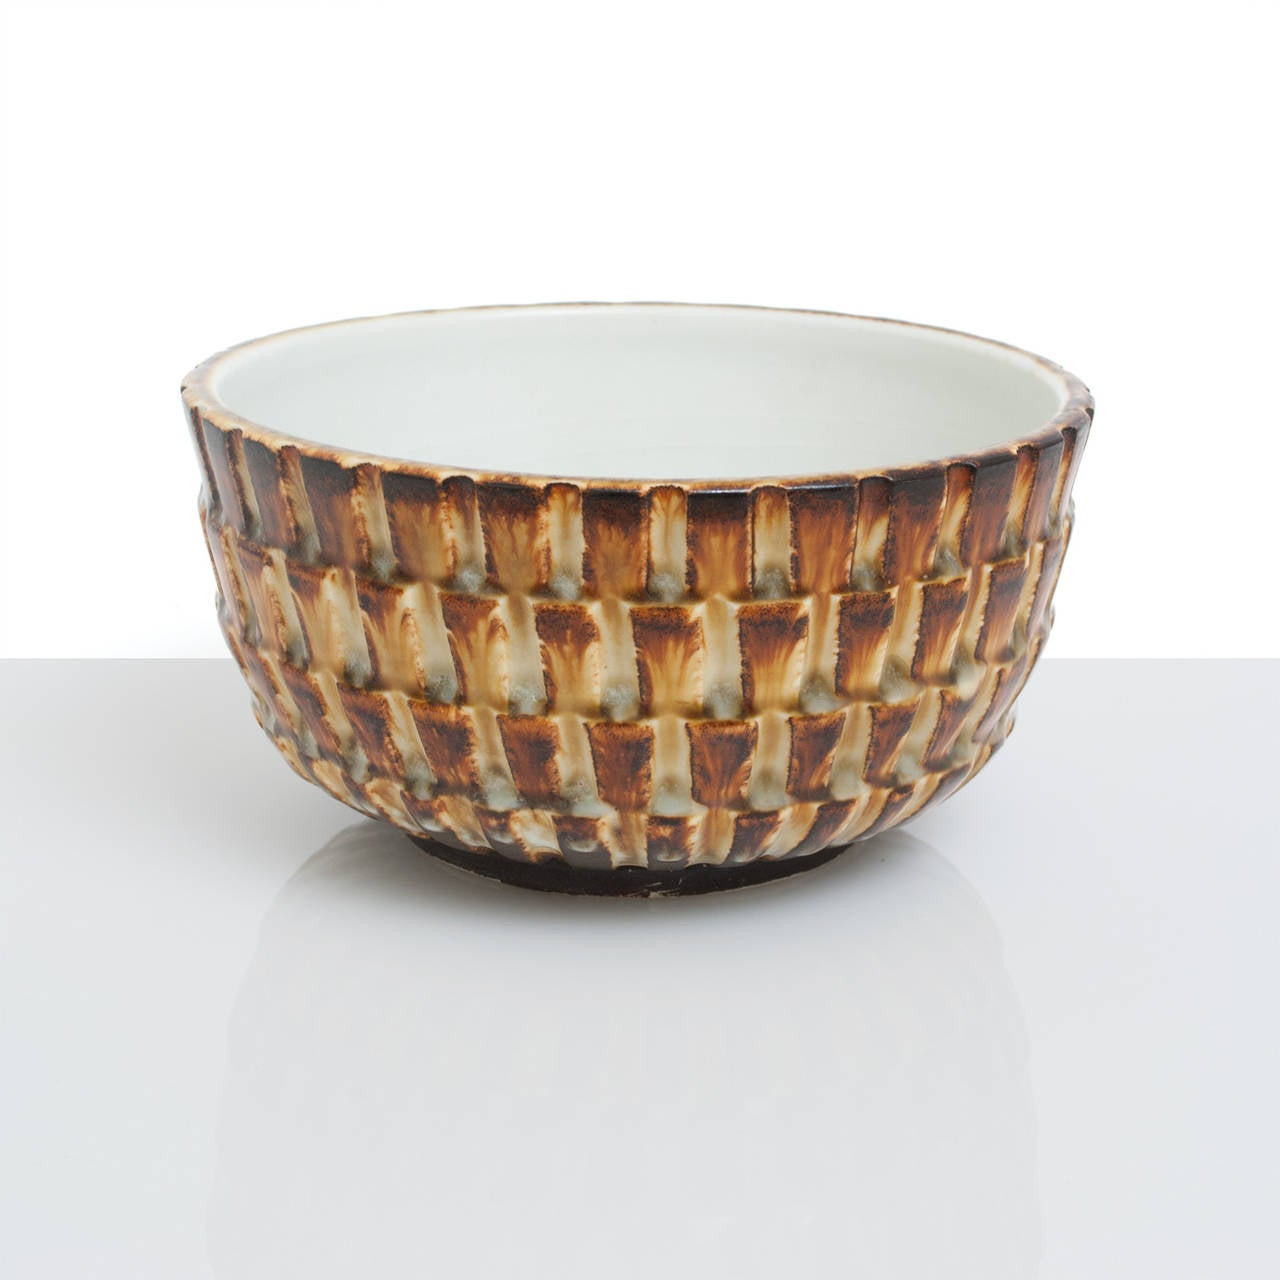 Scandinavian Modern unique ceramic bowl by Gertrud Lonegren. Lonegren studied in Vienna and Stockholm during the 1920s, she worked at Upsala-Ekeby in the 1930s before creating these studio pieces at Rörstrand between 1937-1942.